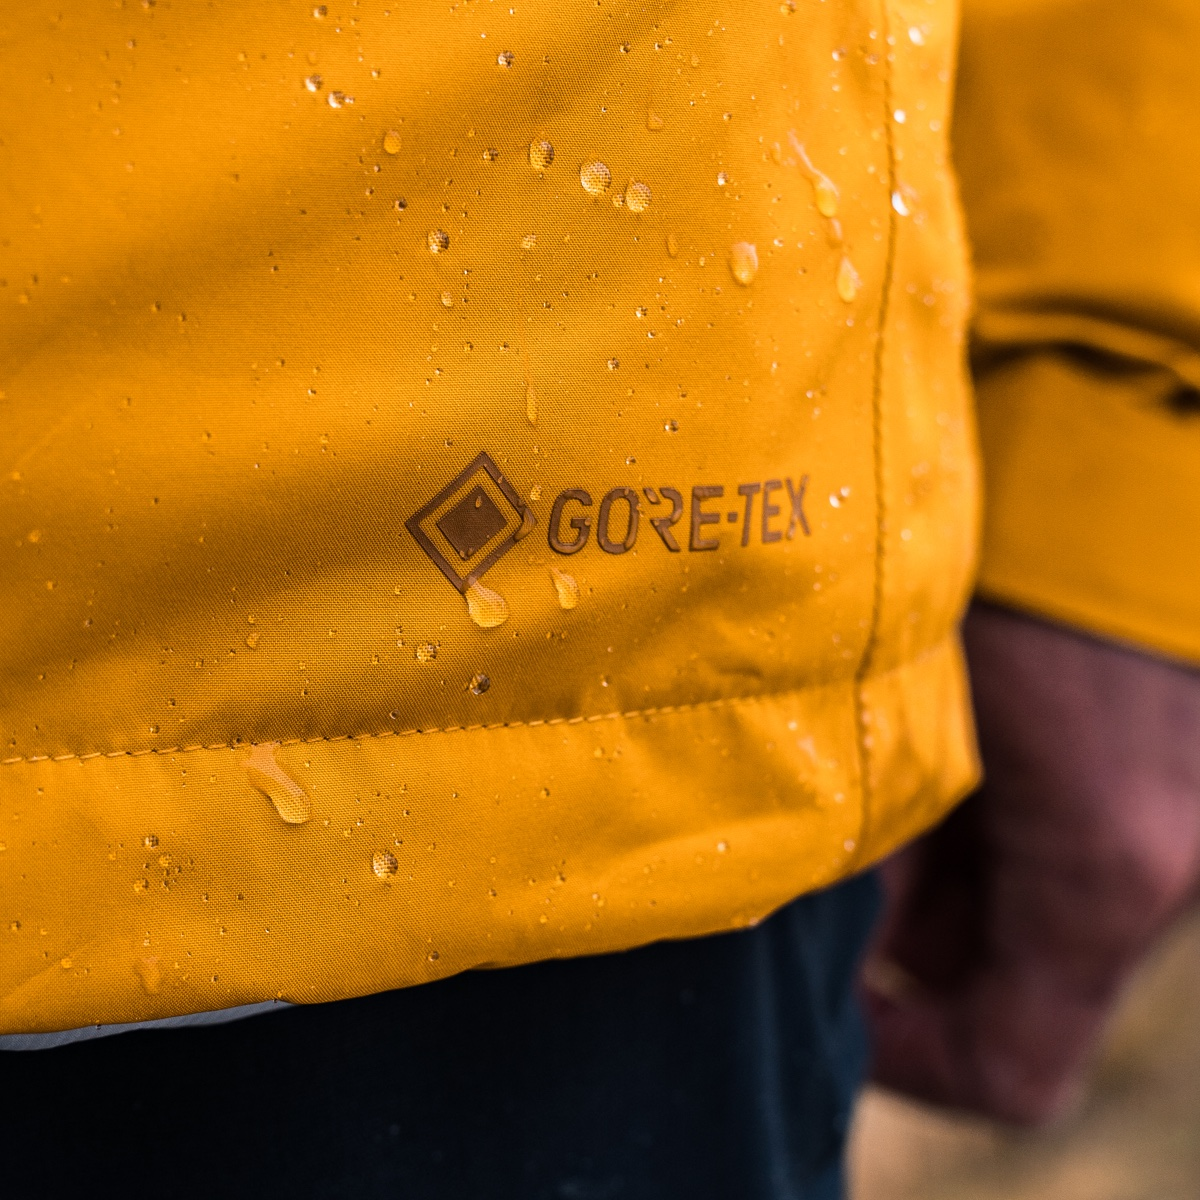 Layer up & stay warm and dry with the original #GORETEX products: #waterproof, #windproof and #breathable. So that youre always properly protected, regardless of the weather. Find the right layers with the new @mammut layering guide: gtx.to/2OexTwl #TestedForLife